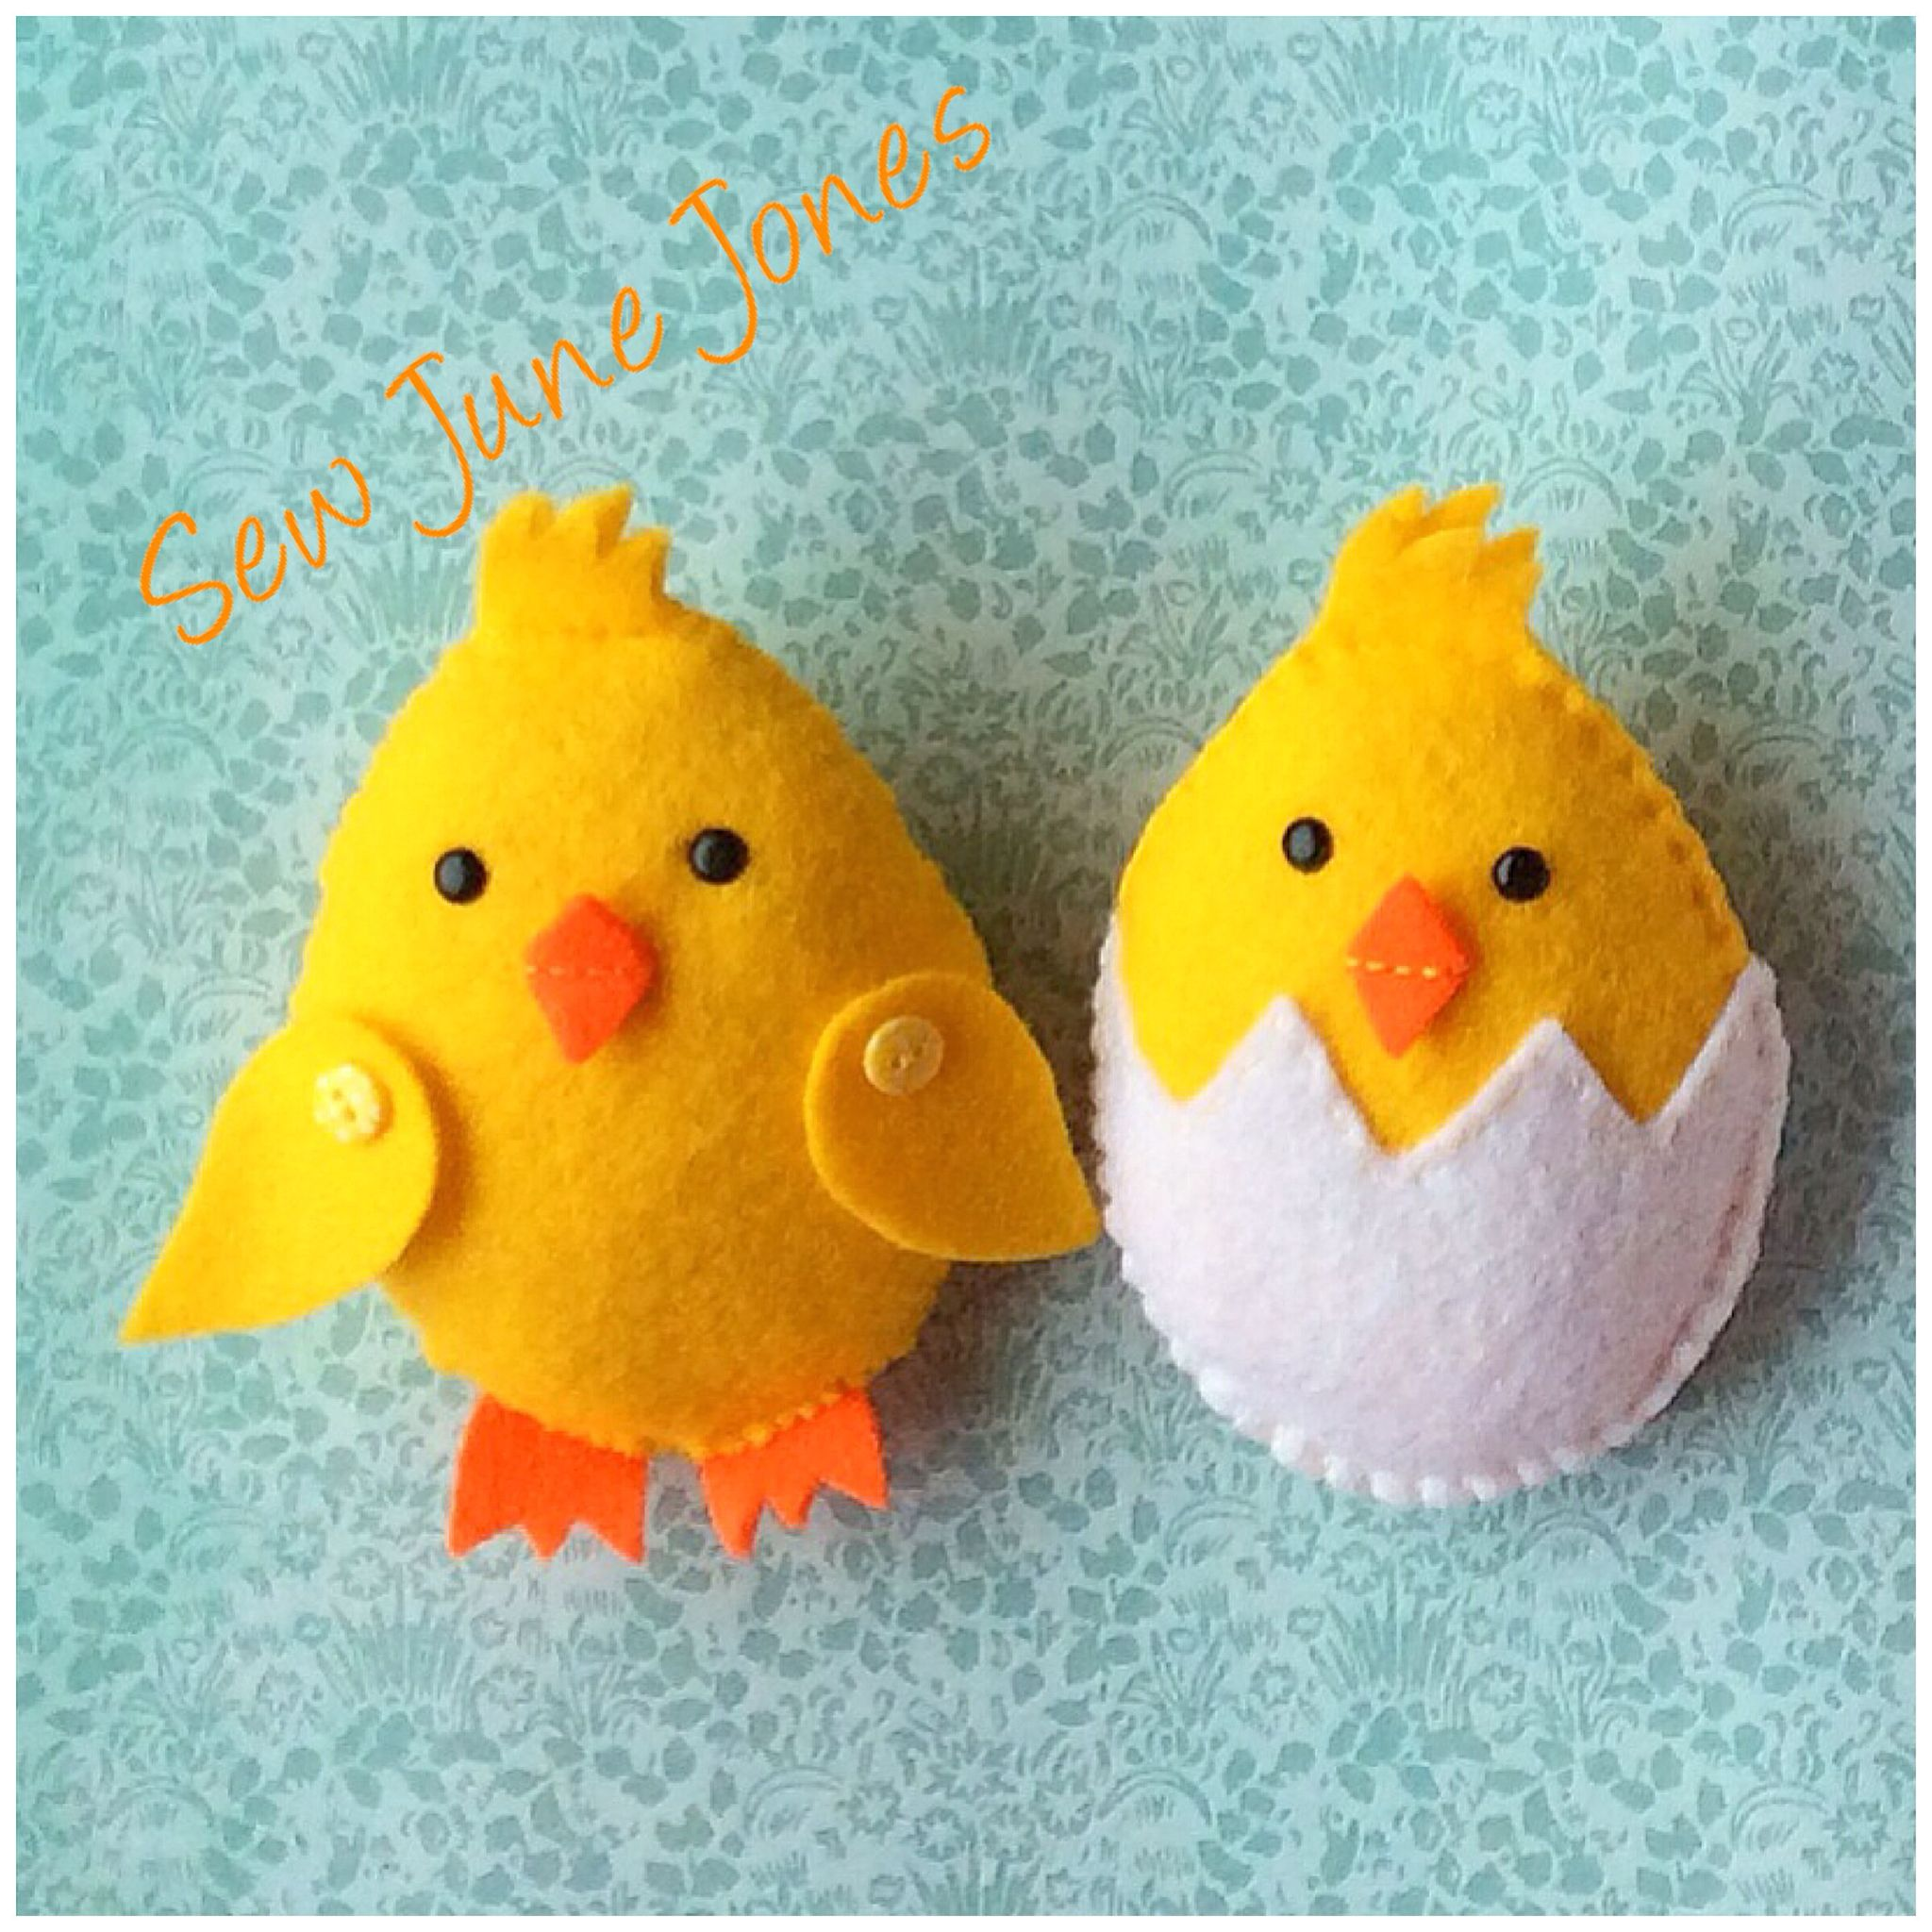 Cute Easter chicks!